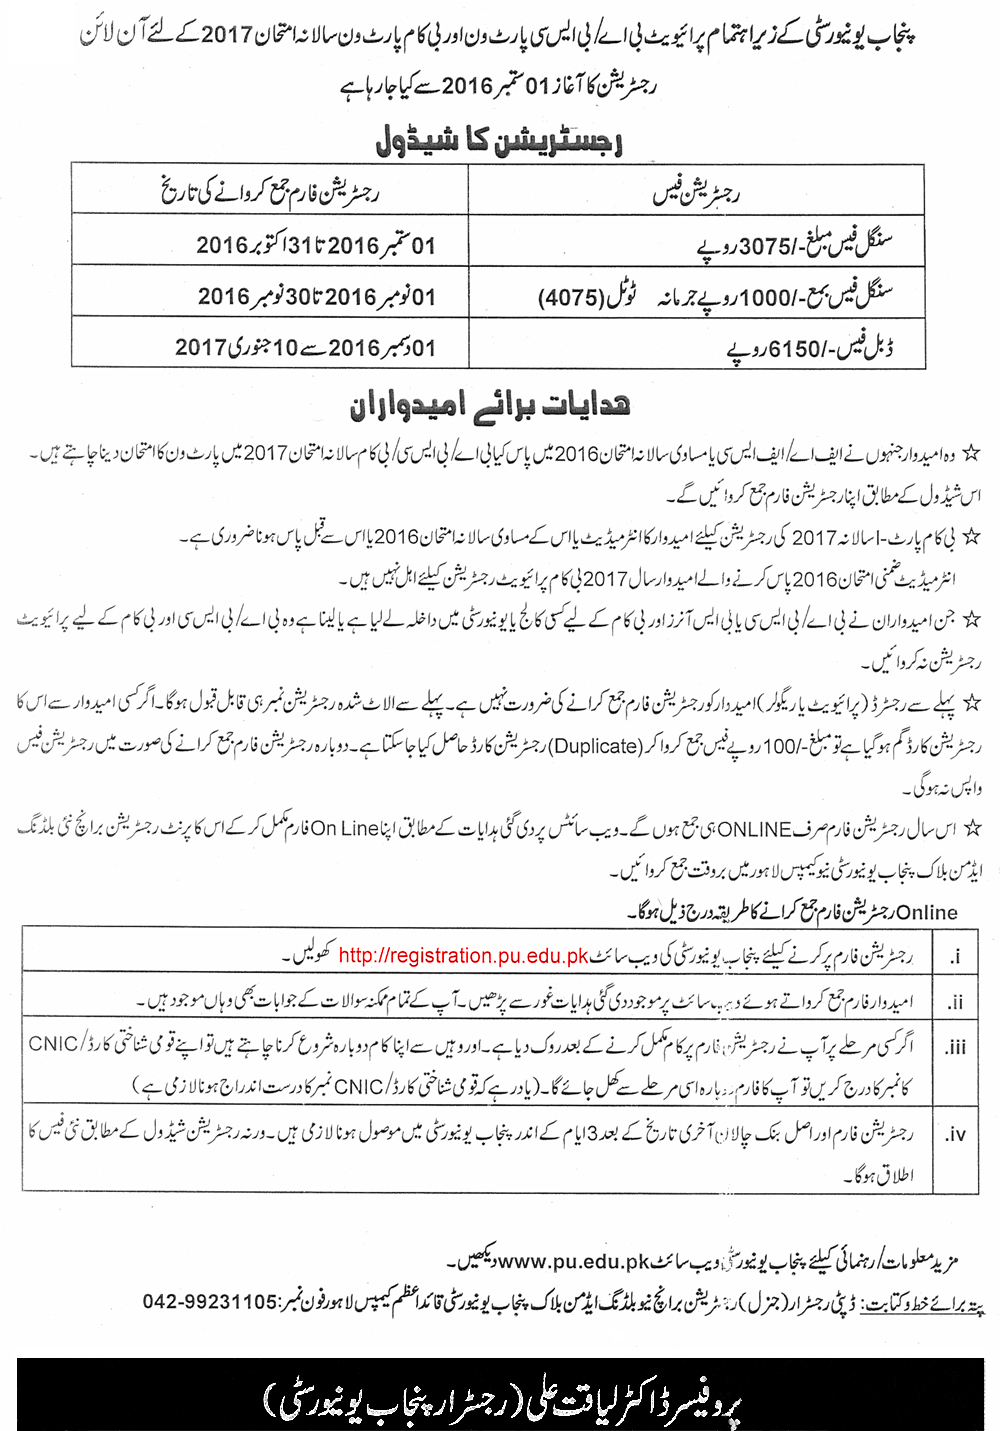 University of the Punjab - News Updates - Registration of Private ...